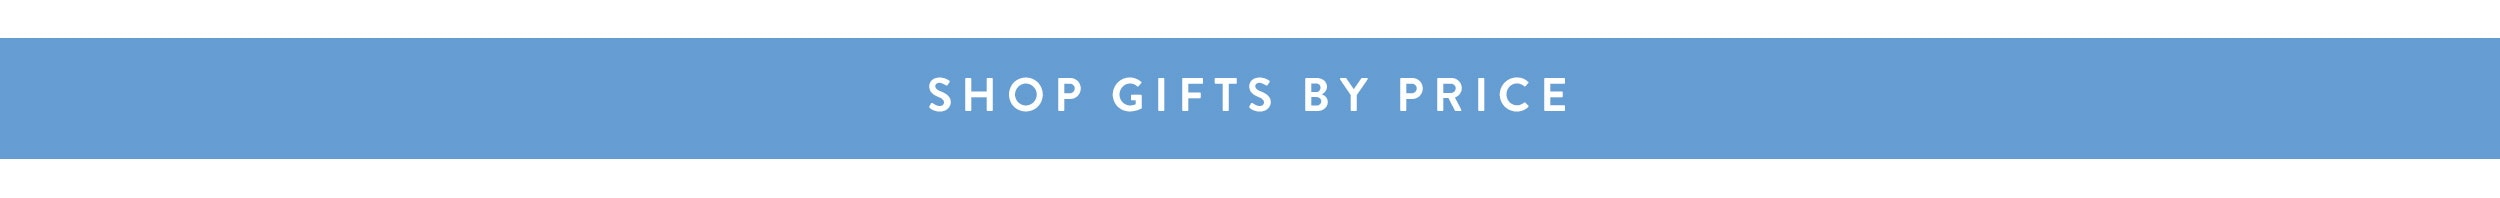 Shop Fathers Day Gifts By Price